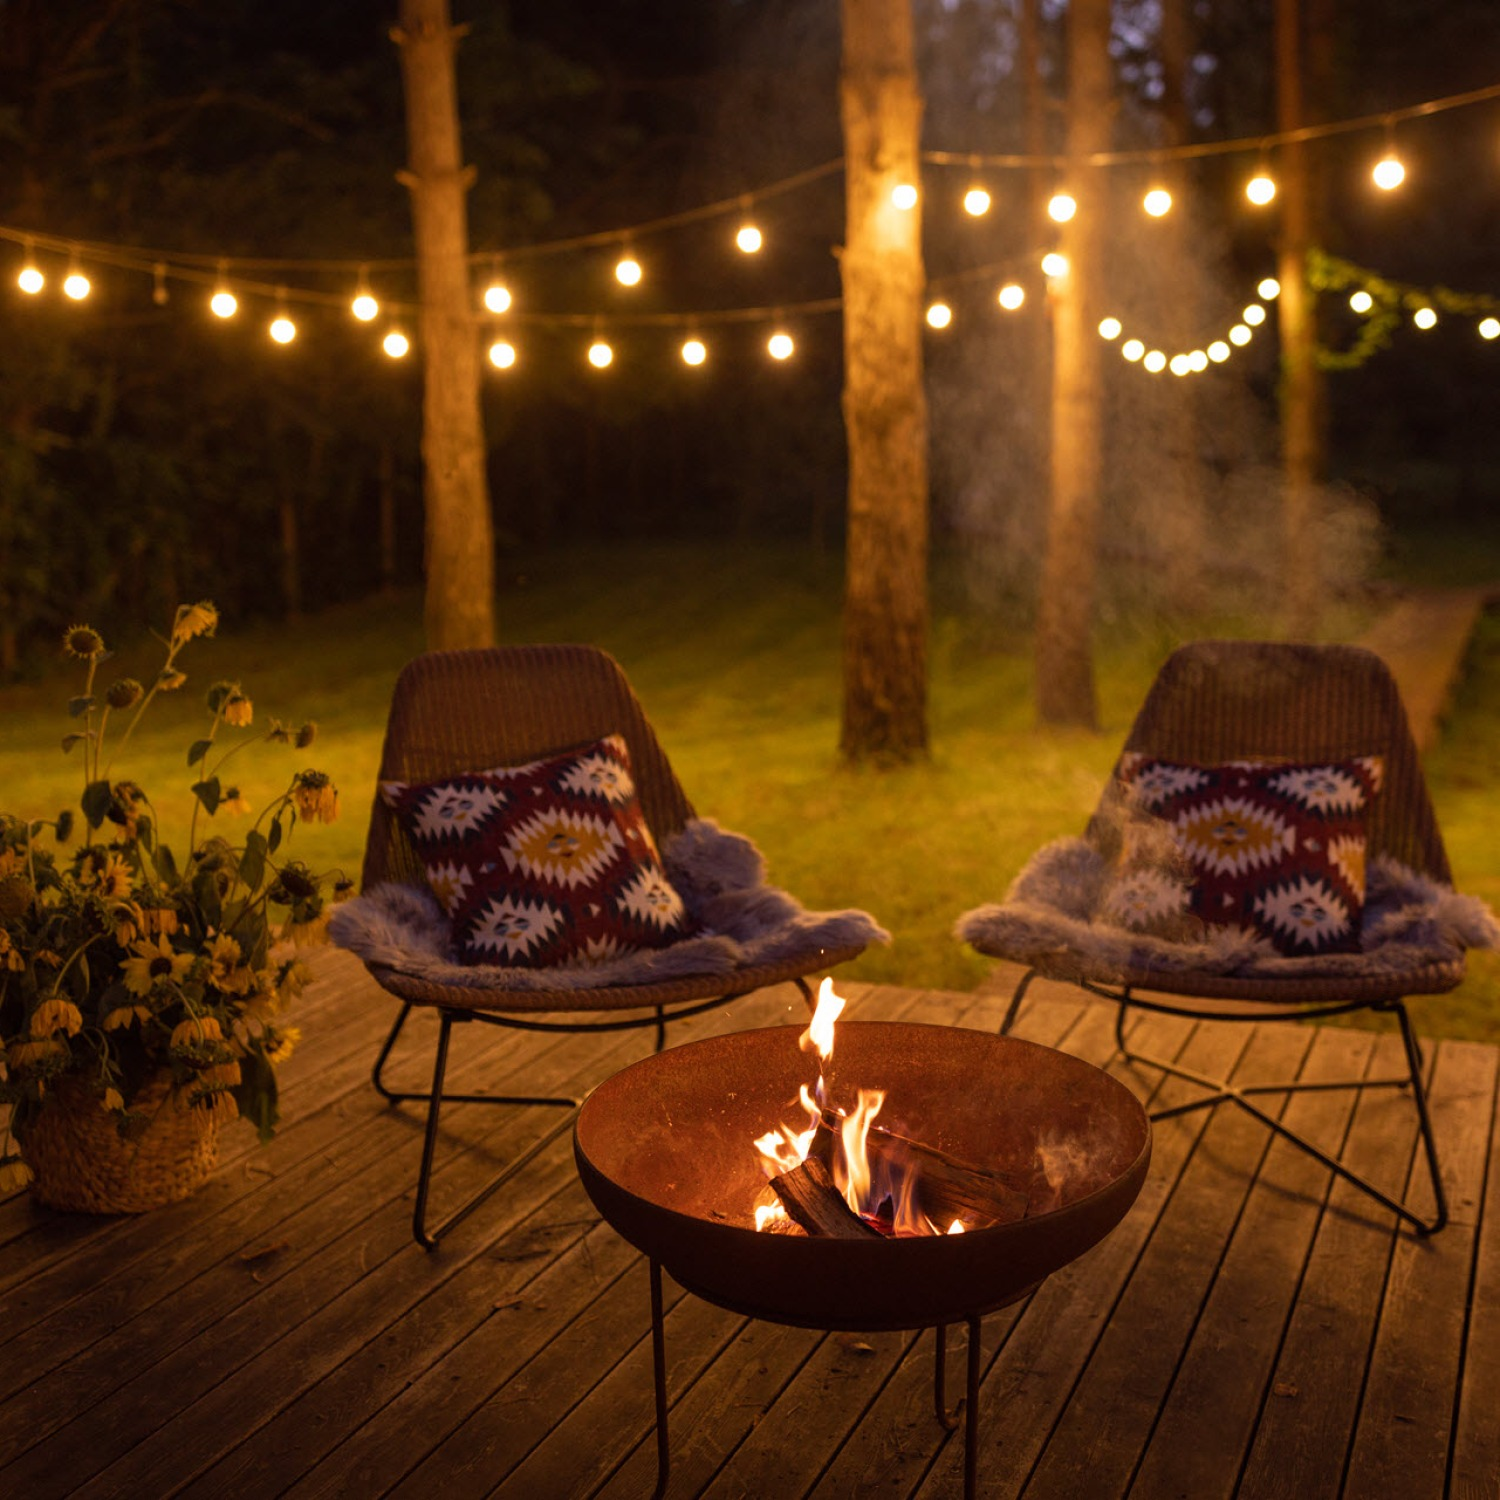 outdoor living season porch chairs string lights